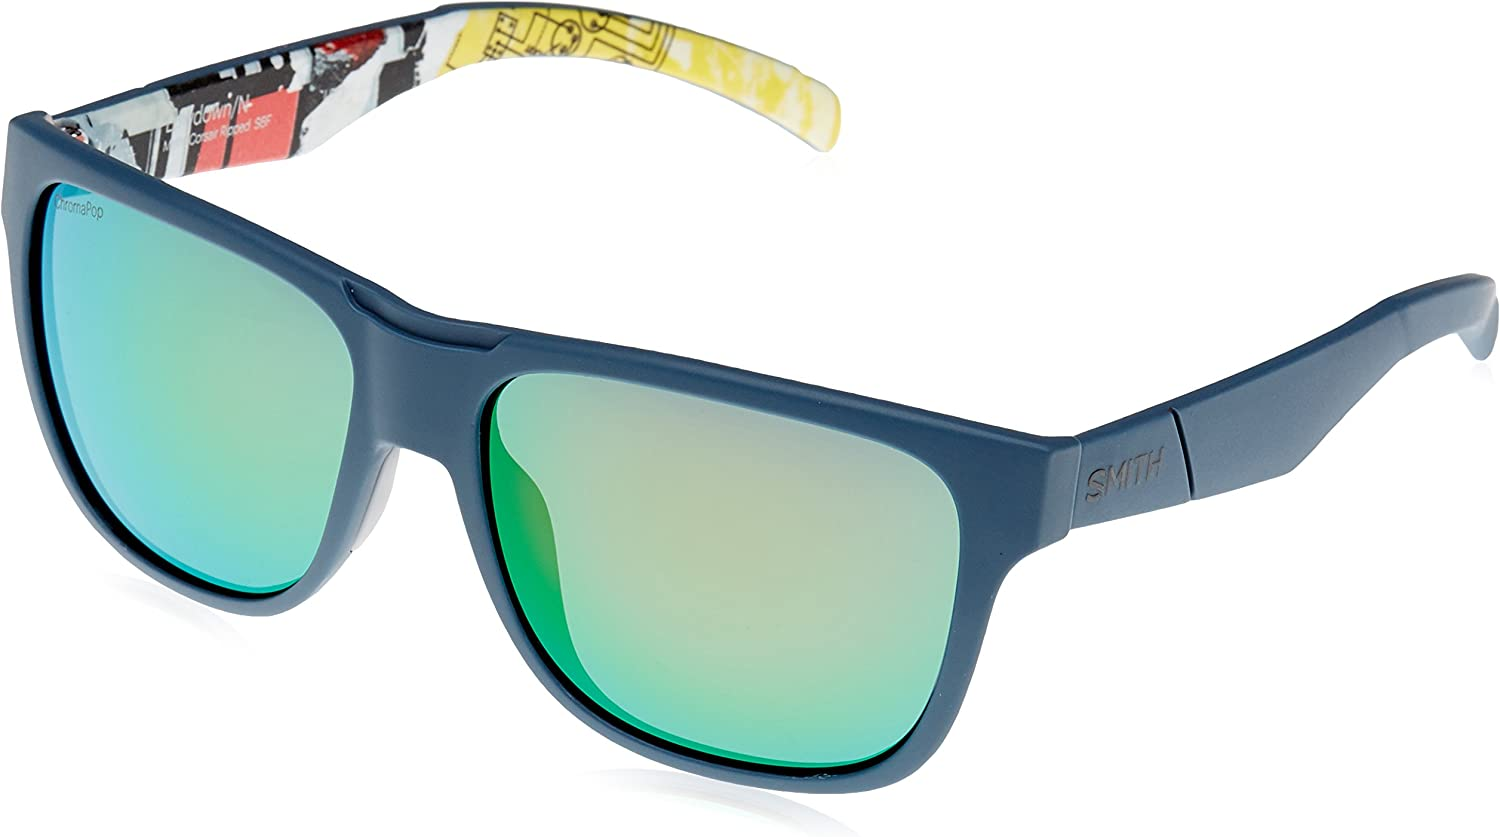 Smith Lowdown, Gafas de Sol para Hombre